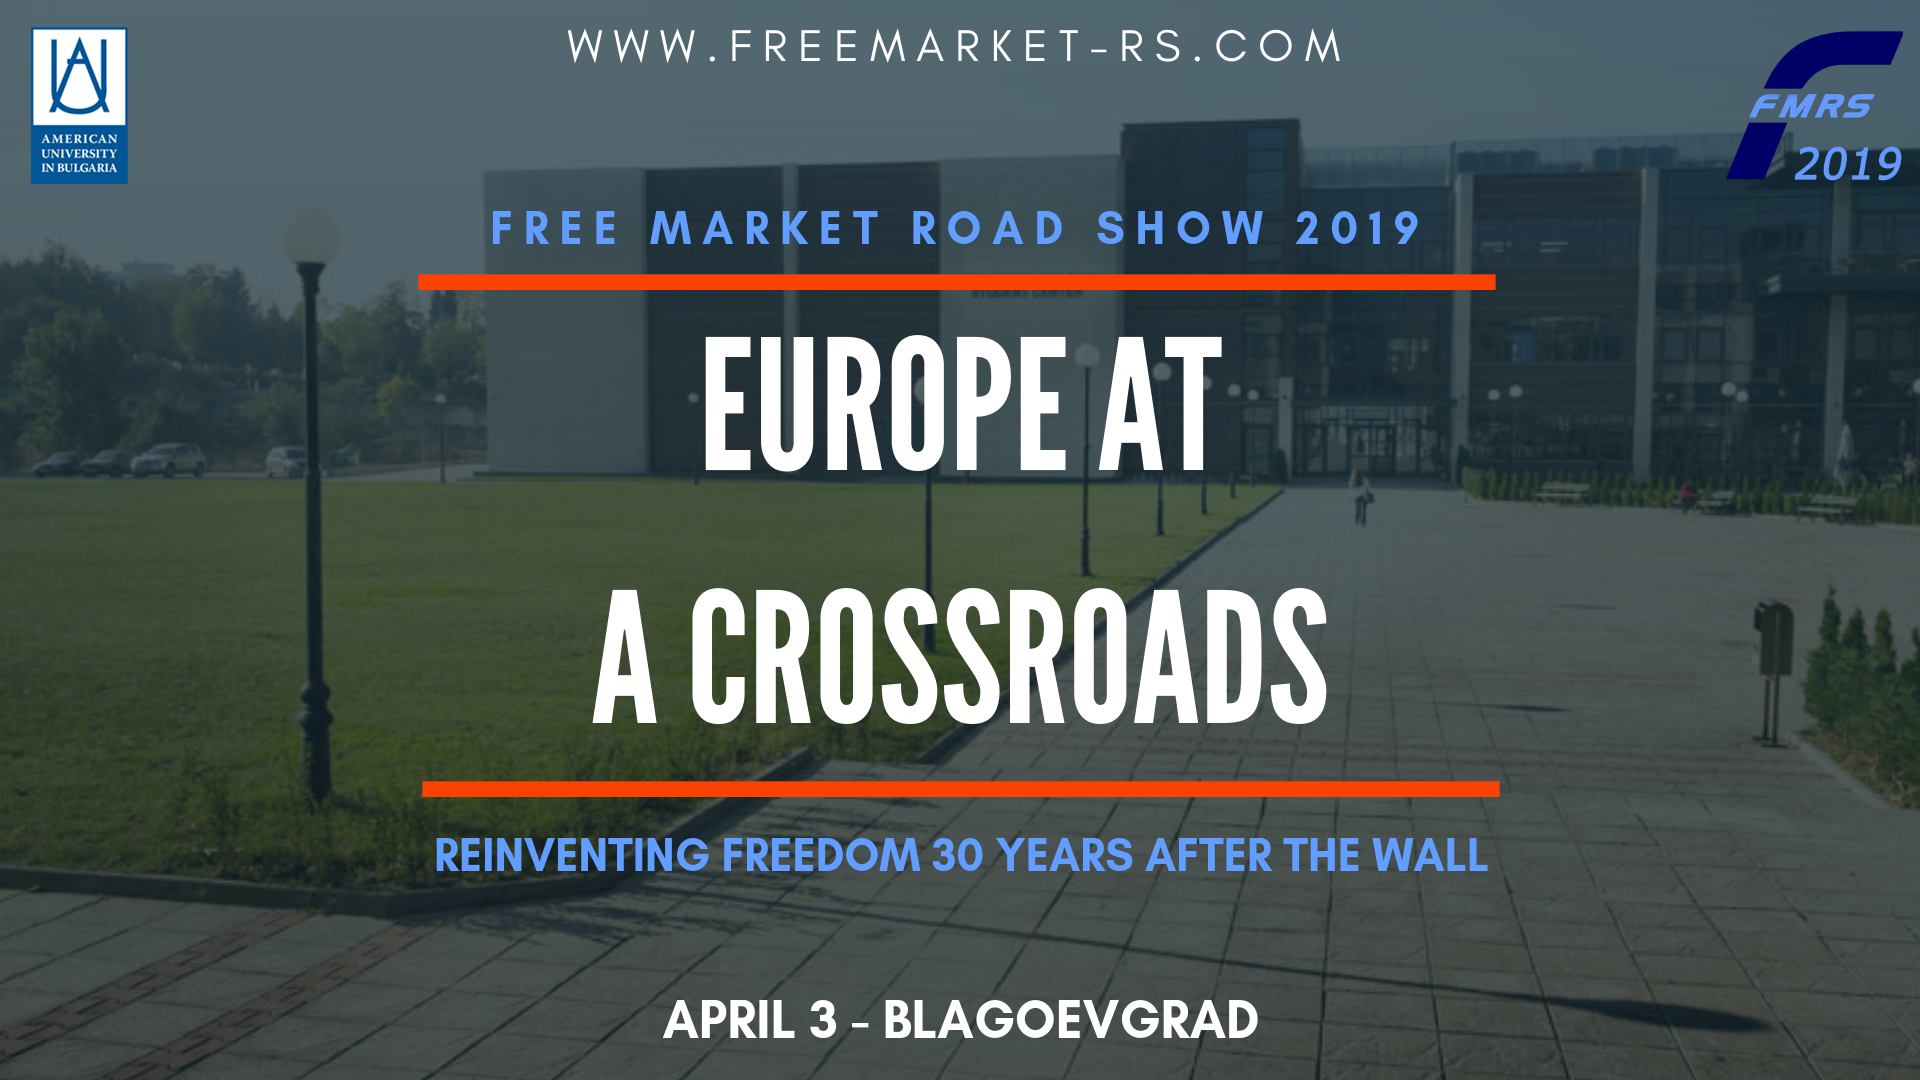 Free Market Road Show: Europe at a Crossroads: Reinventing Freedom 30 Years After the Wall